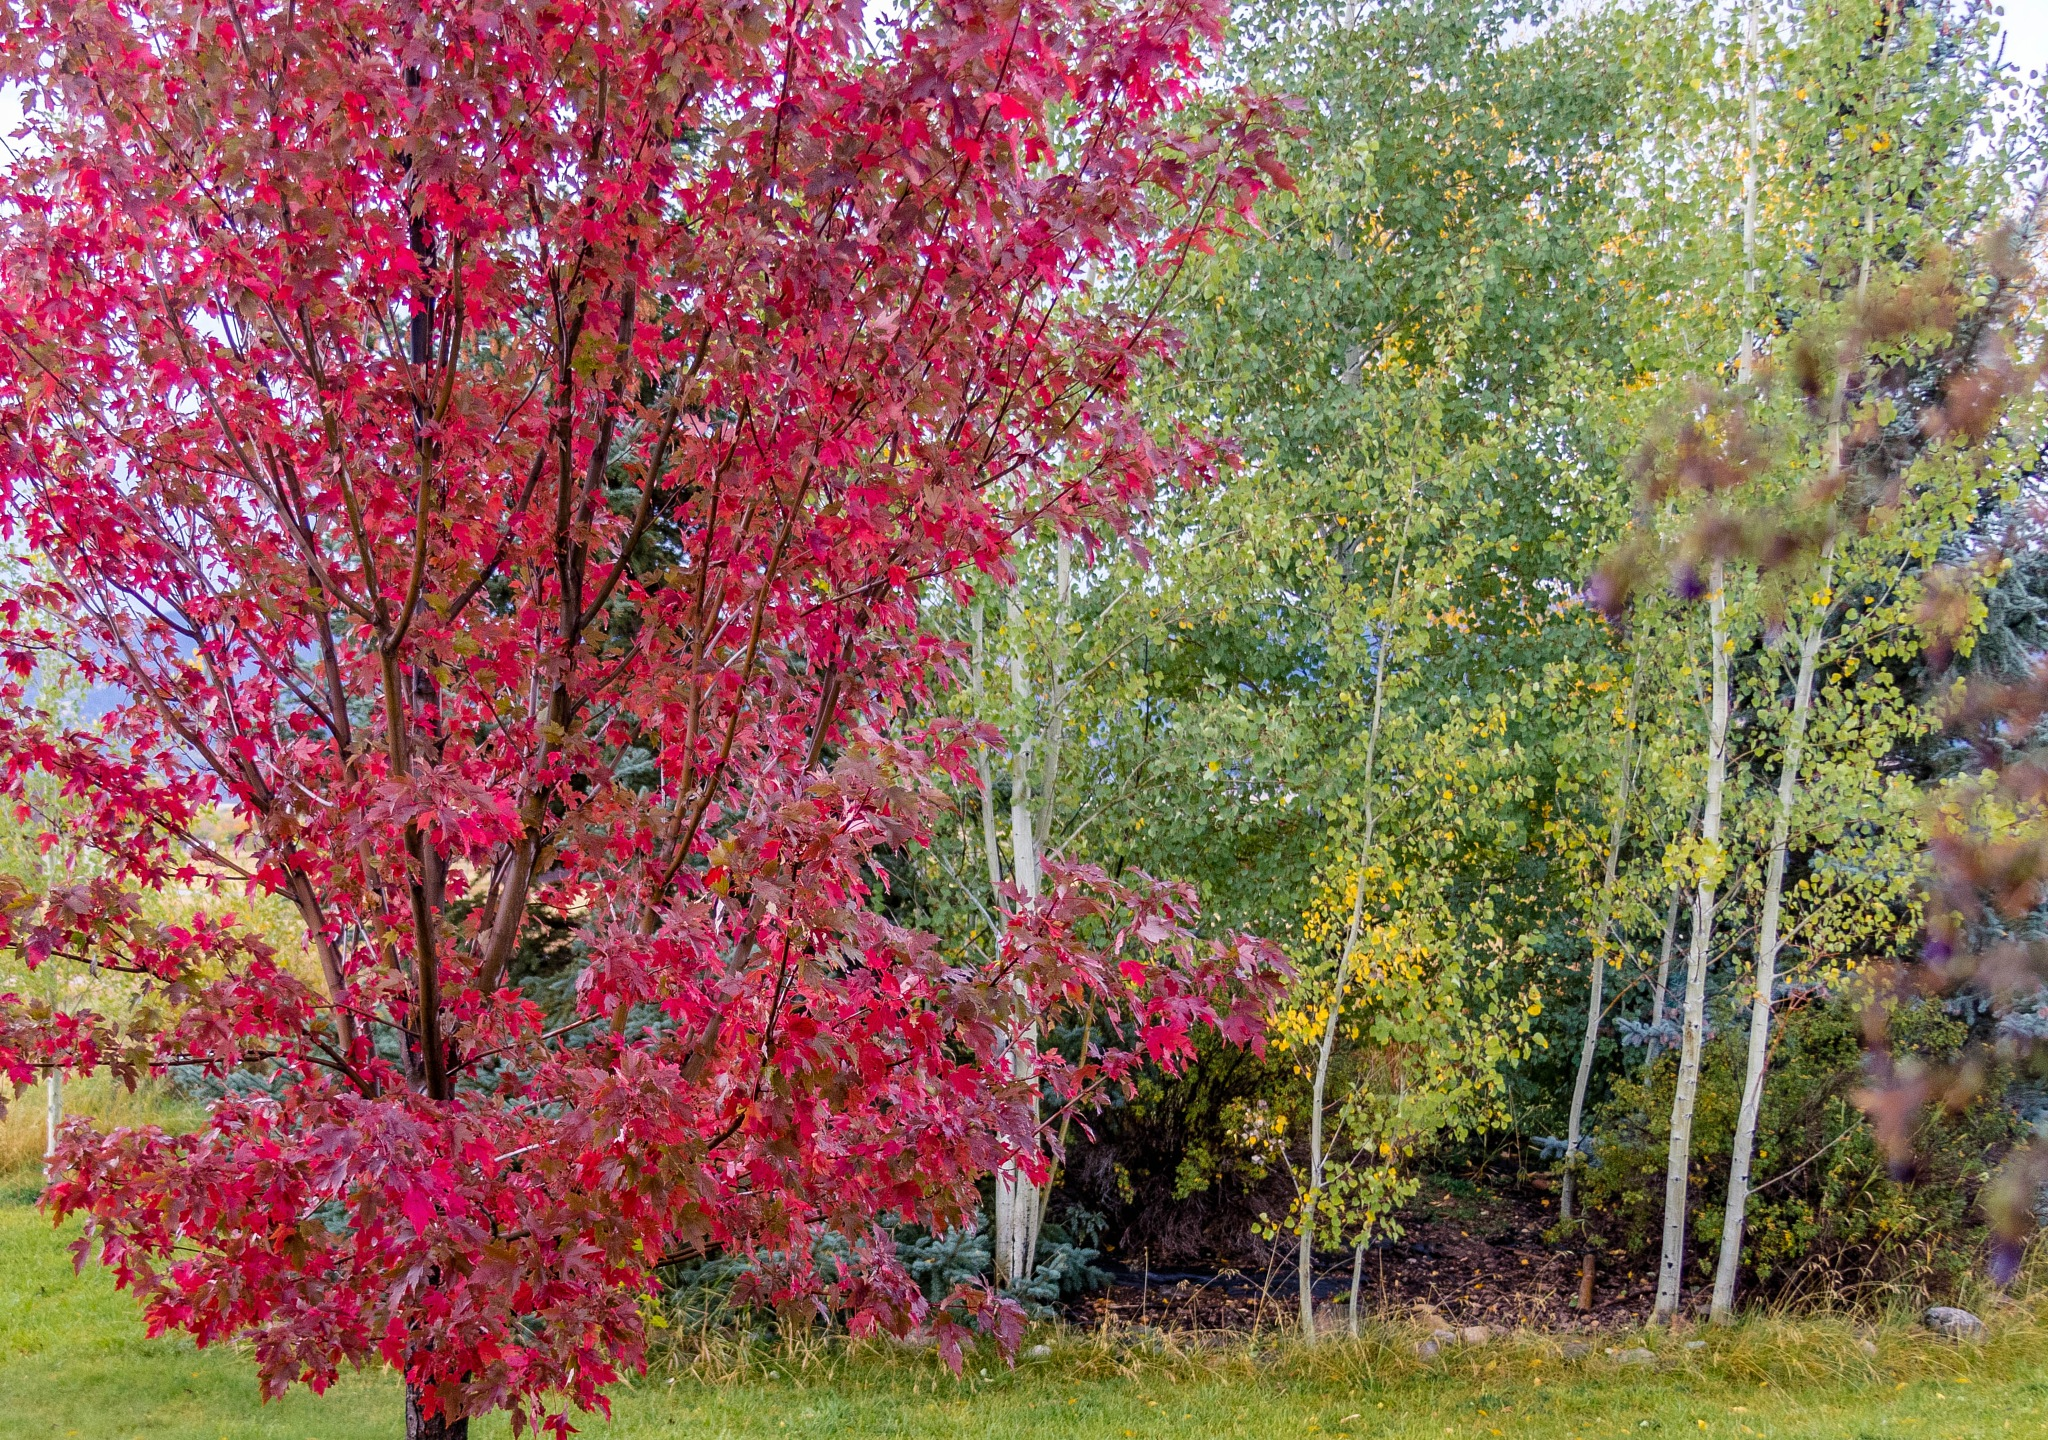 Flaming Maple by drchad480